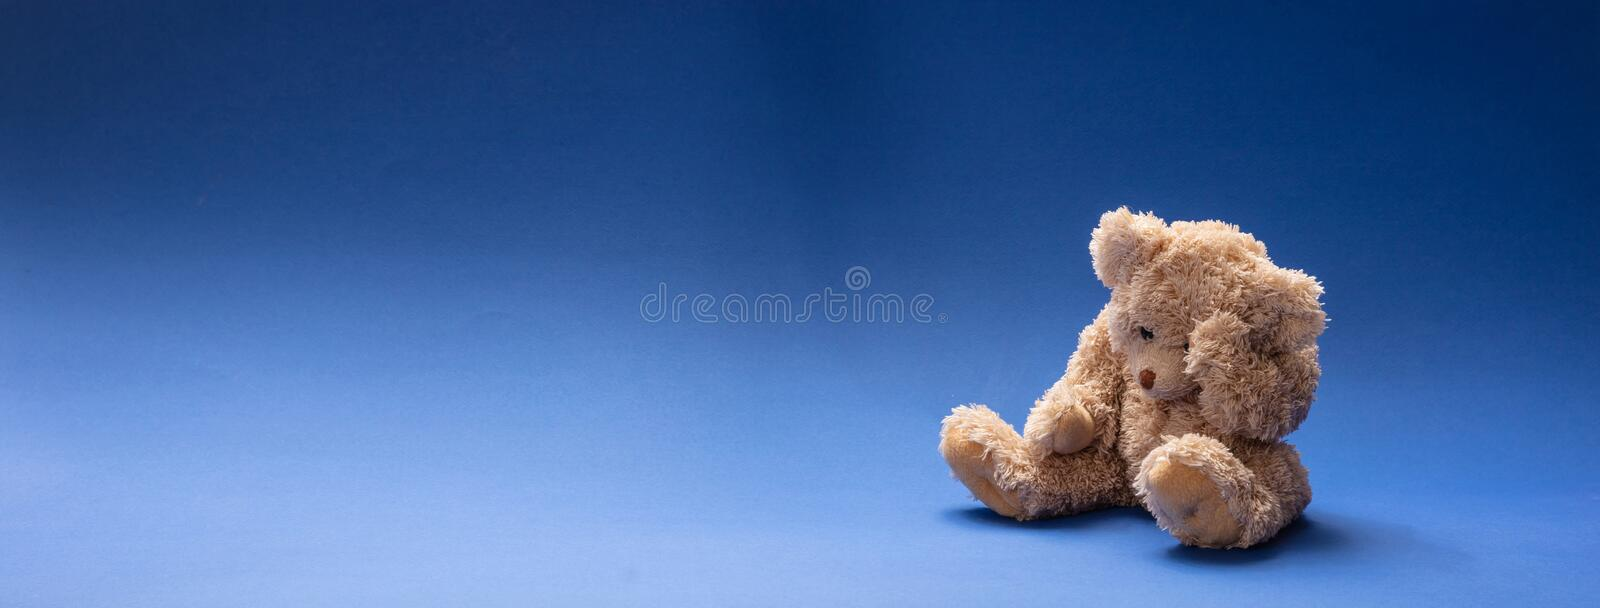 Teddy bear sad, holding his head, sitting in blue empty room background, banner. Blue Monday, depression concept. Teddy bear sad, holding his head, sitting in stock photo